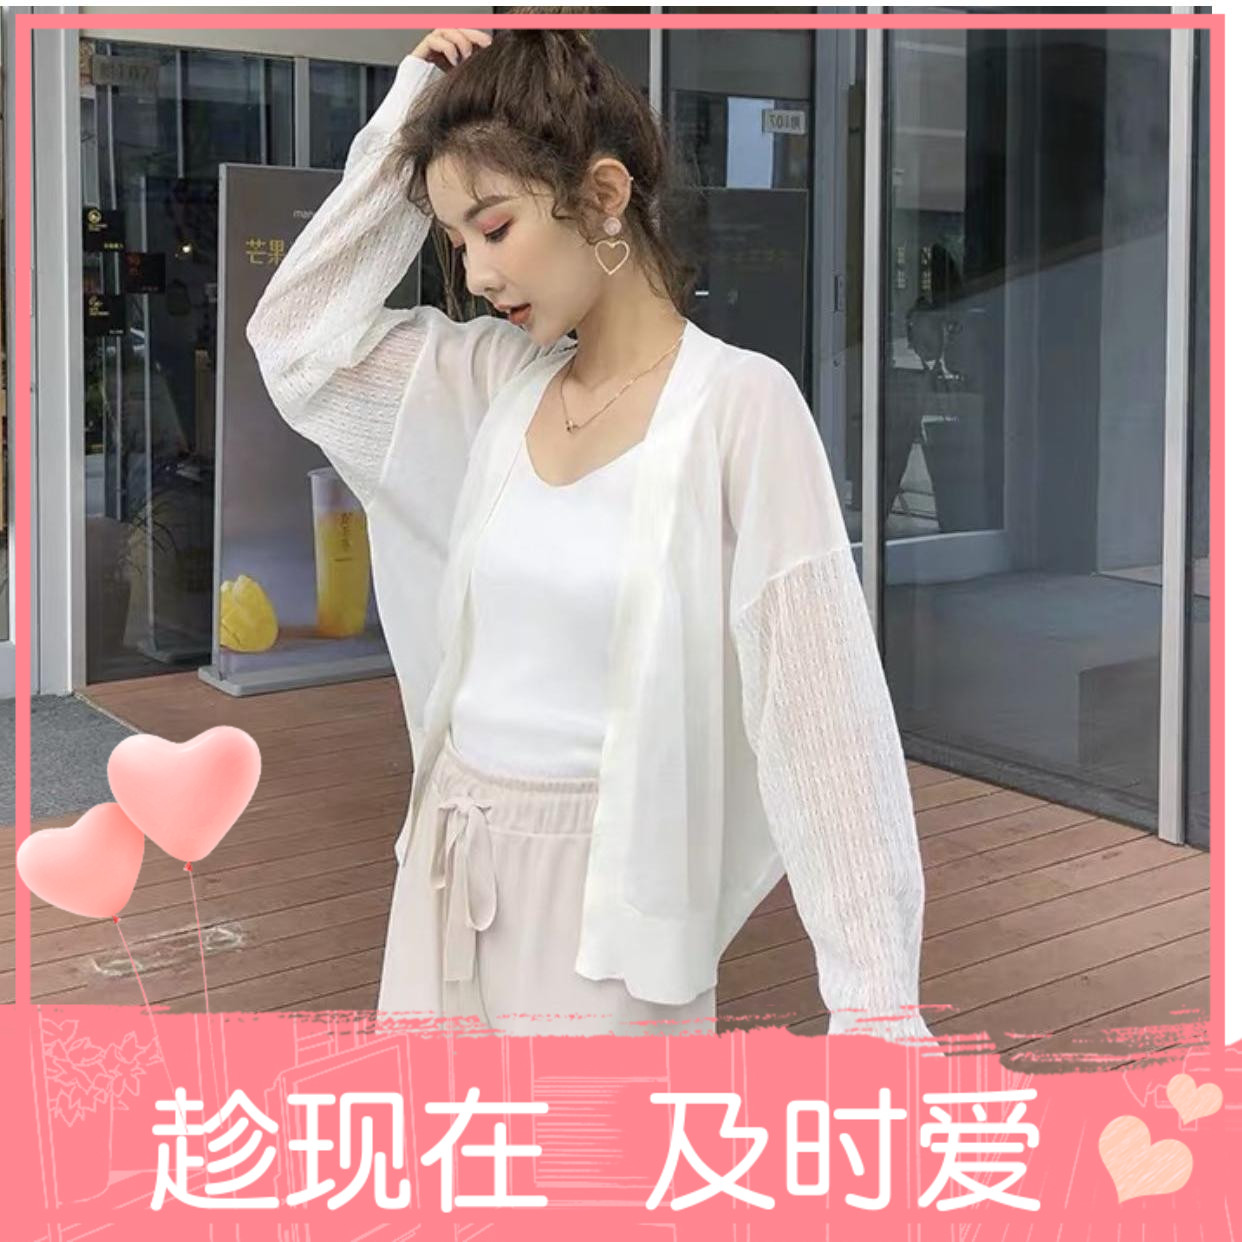 Outside with ice silk cardigan thin summer sun protective clothing air conditioning shirt coat short top womens sleeve hollow knitwear